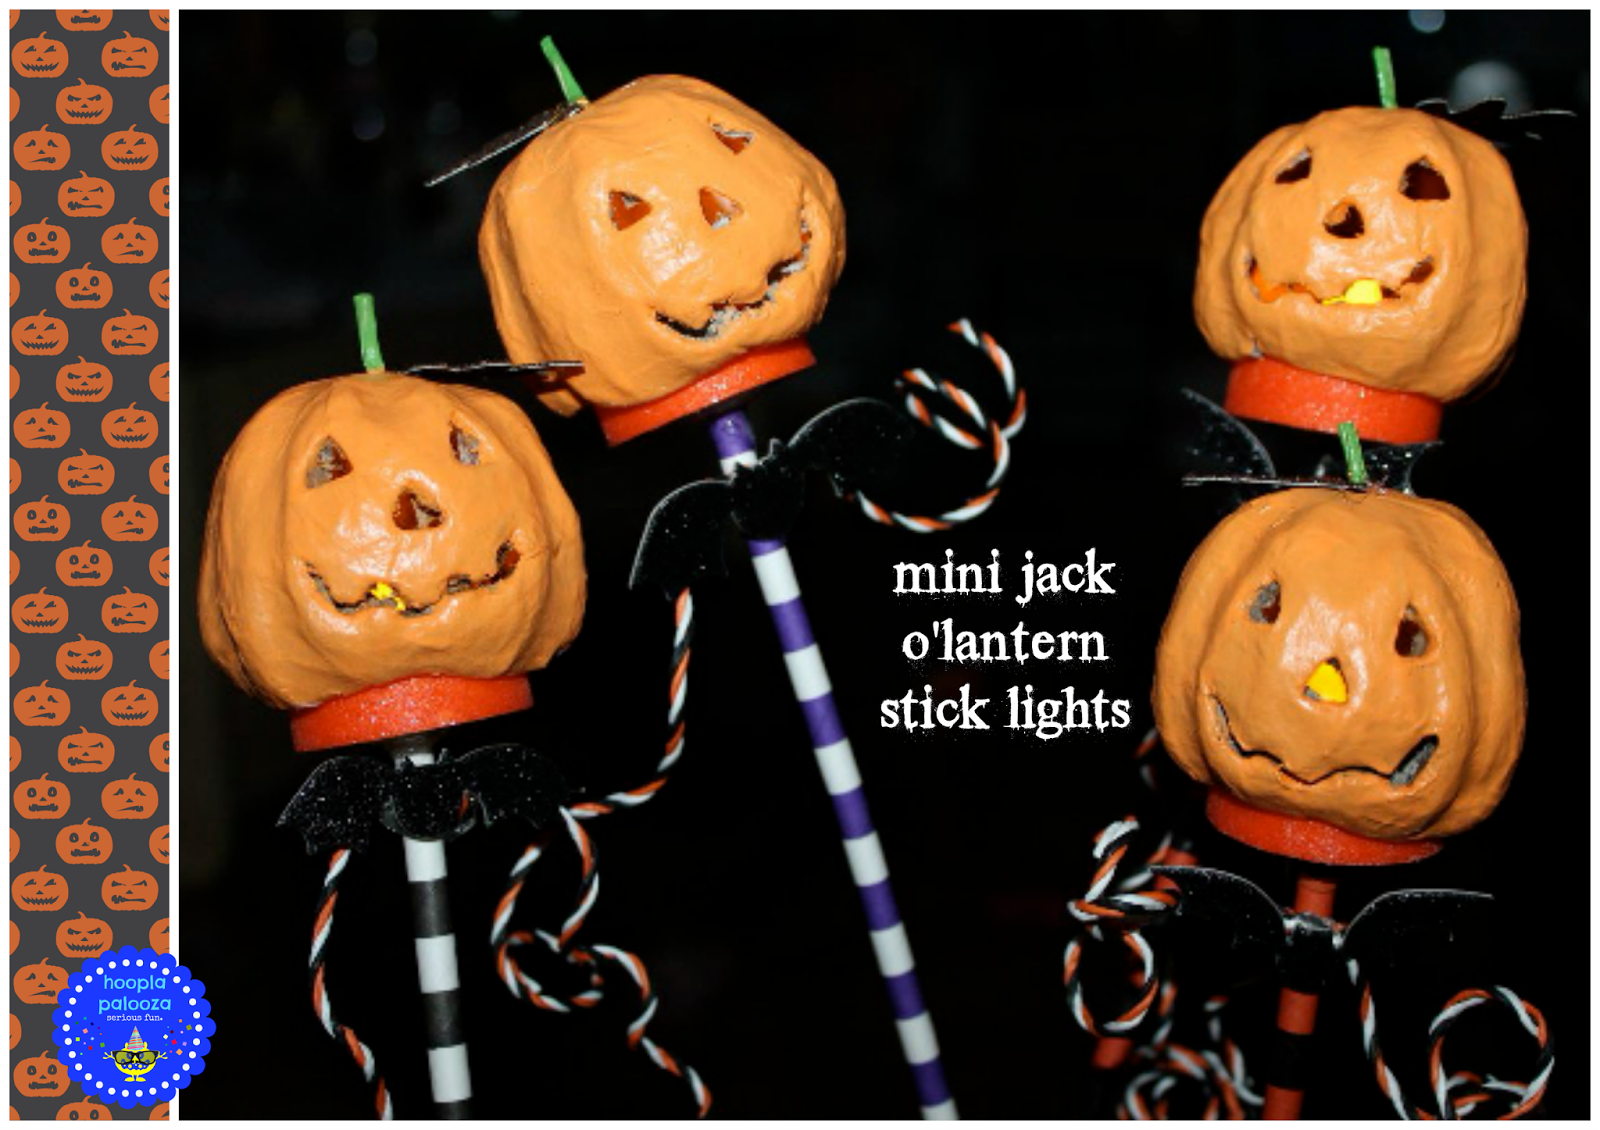 mini jack o'latern stick lights